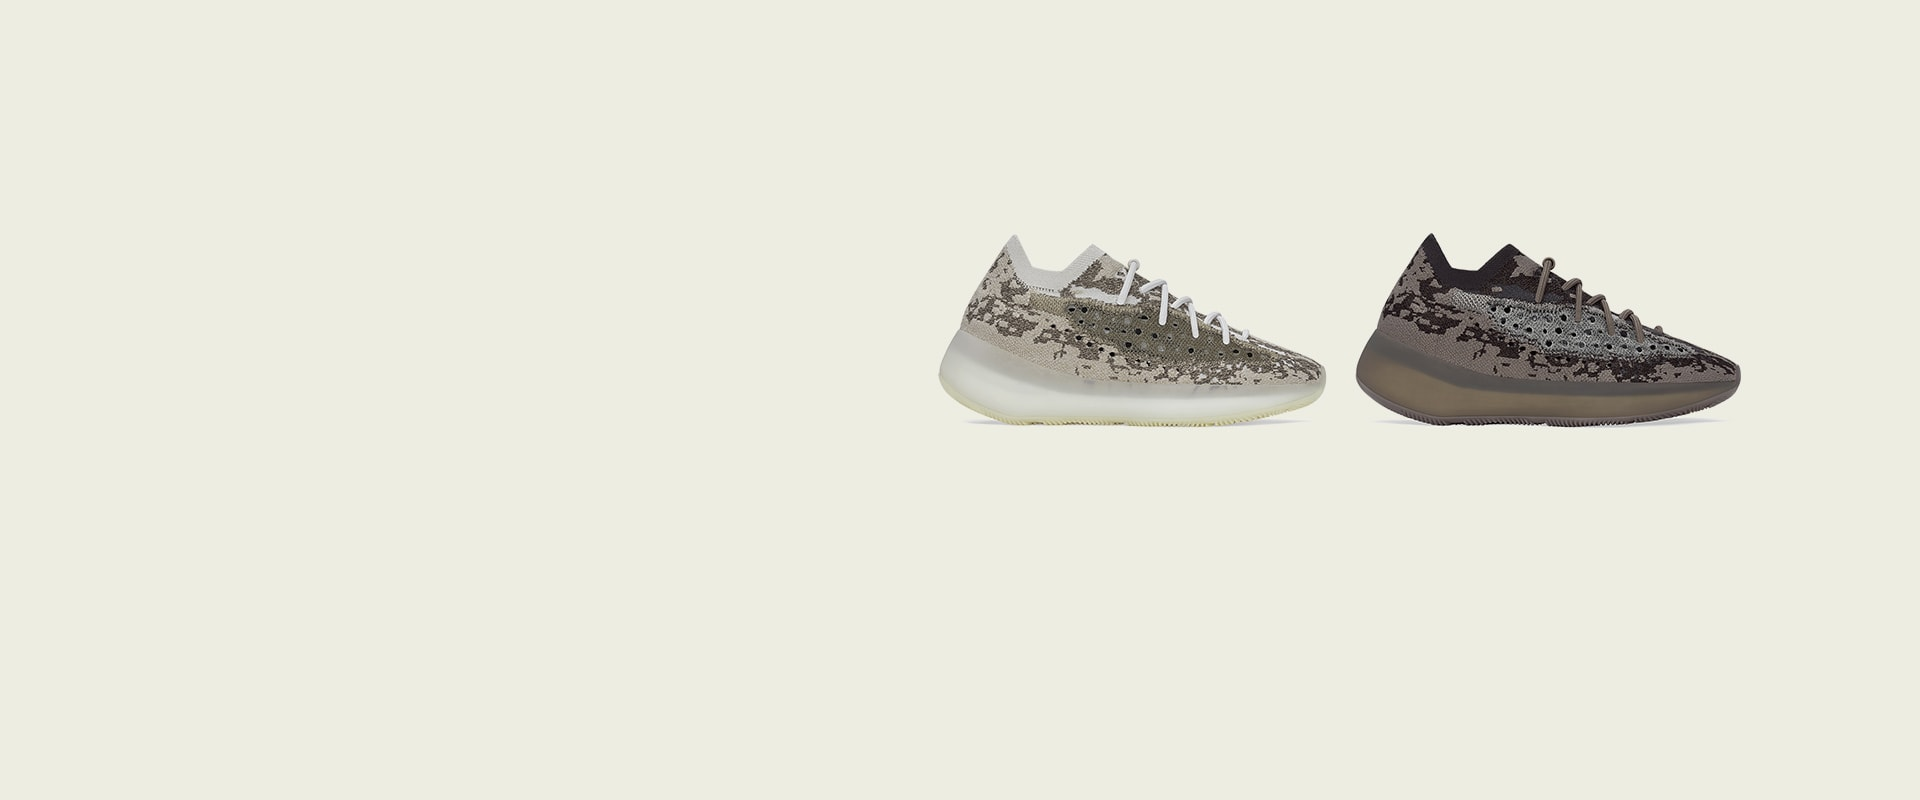 YEEZY BOOST 380 PYRITE AND STONE SALT